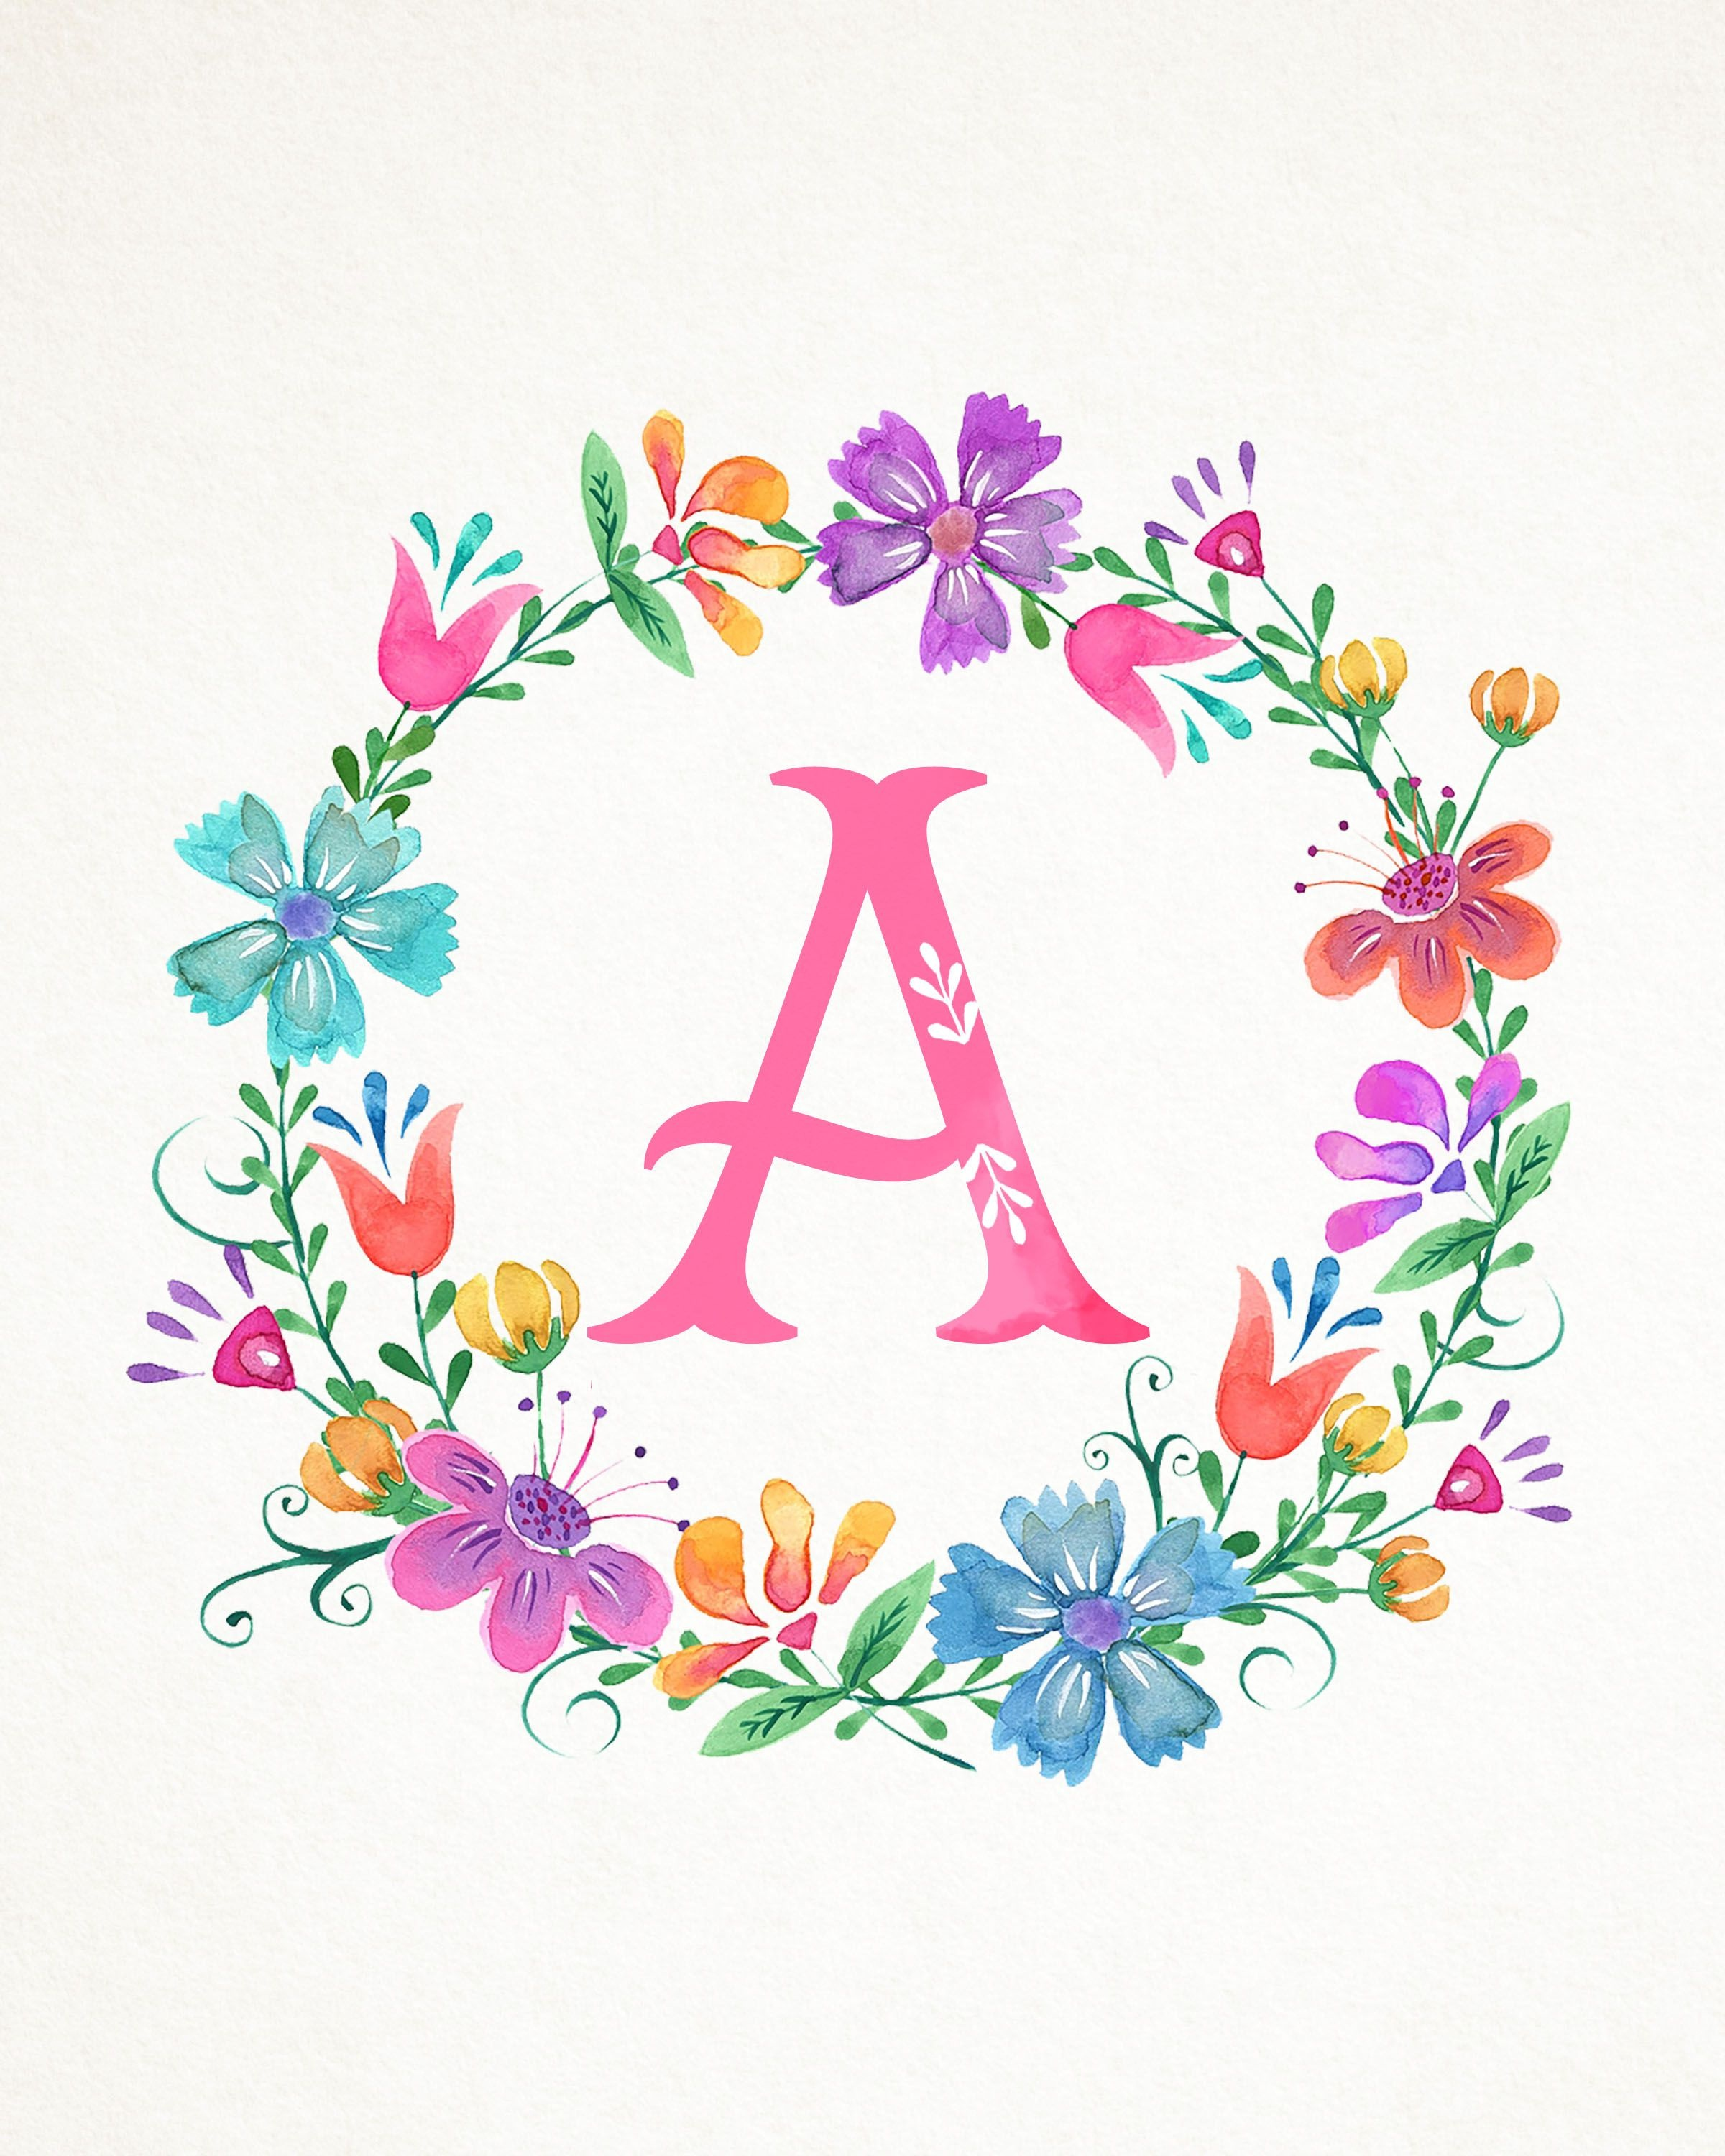 Free Printable Whimsical Watercolor Monograms | ~Monograms - Free Printable Flower Letters